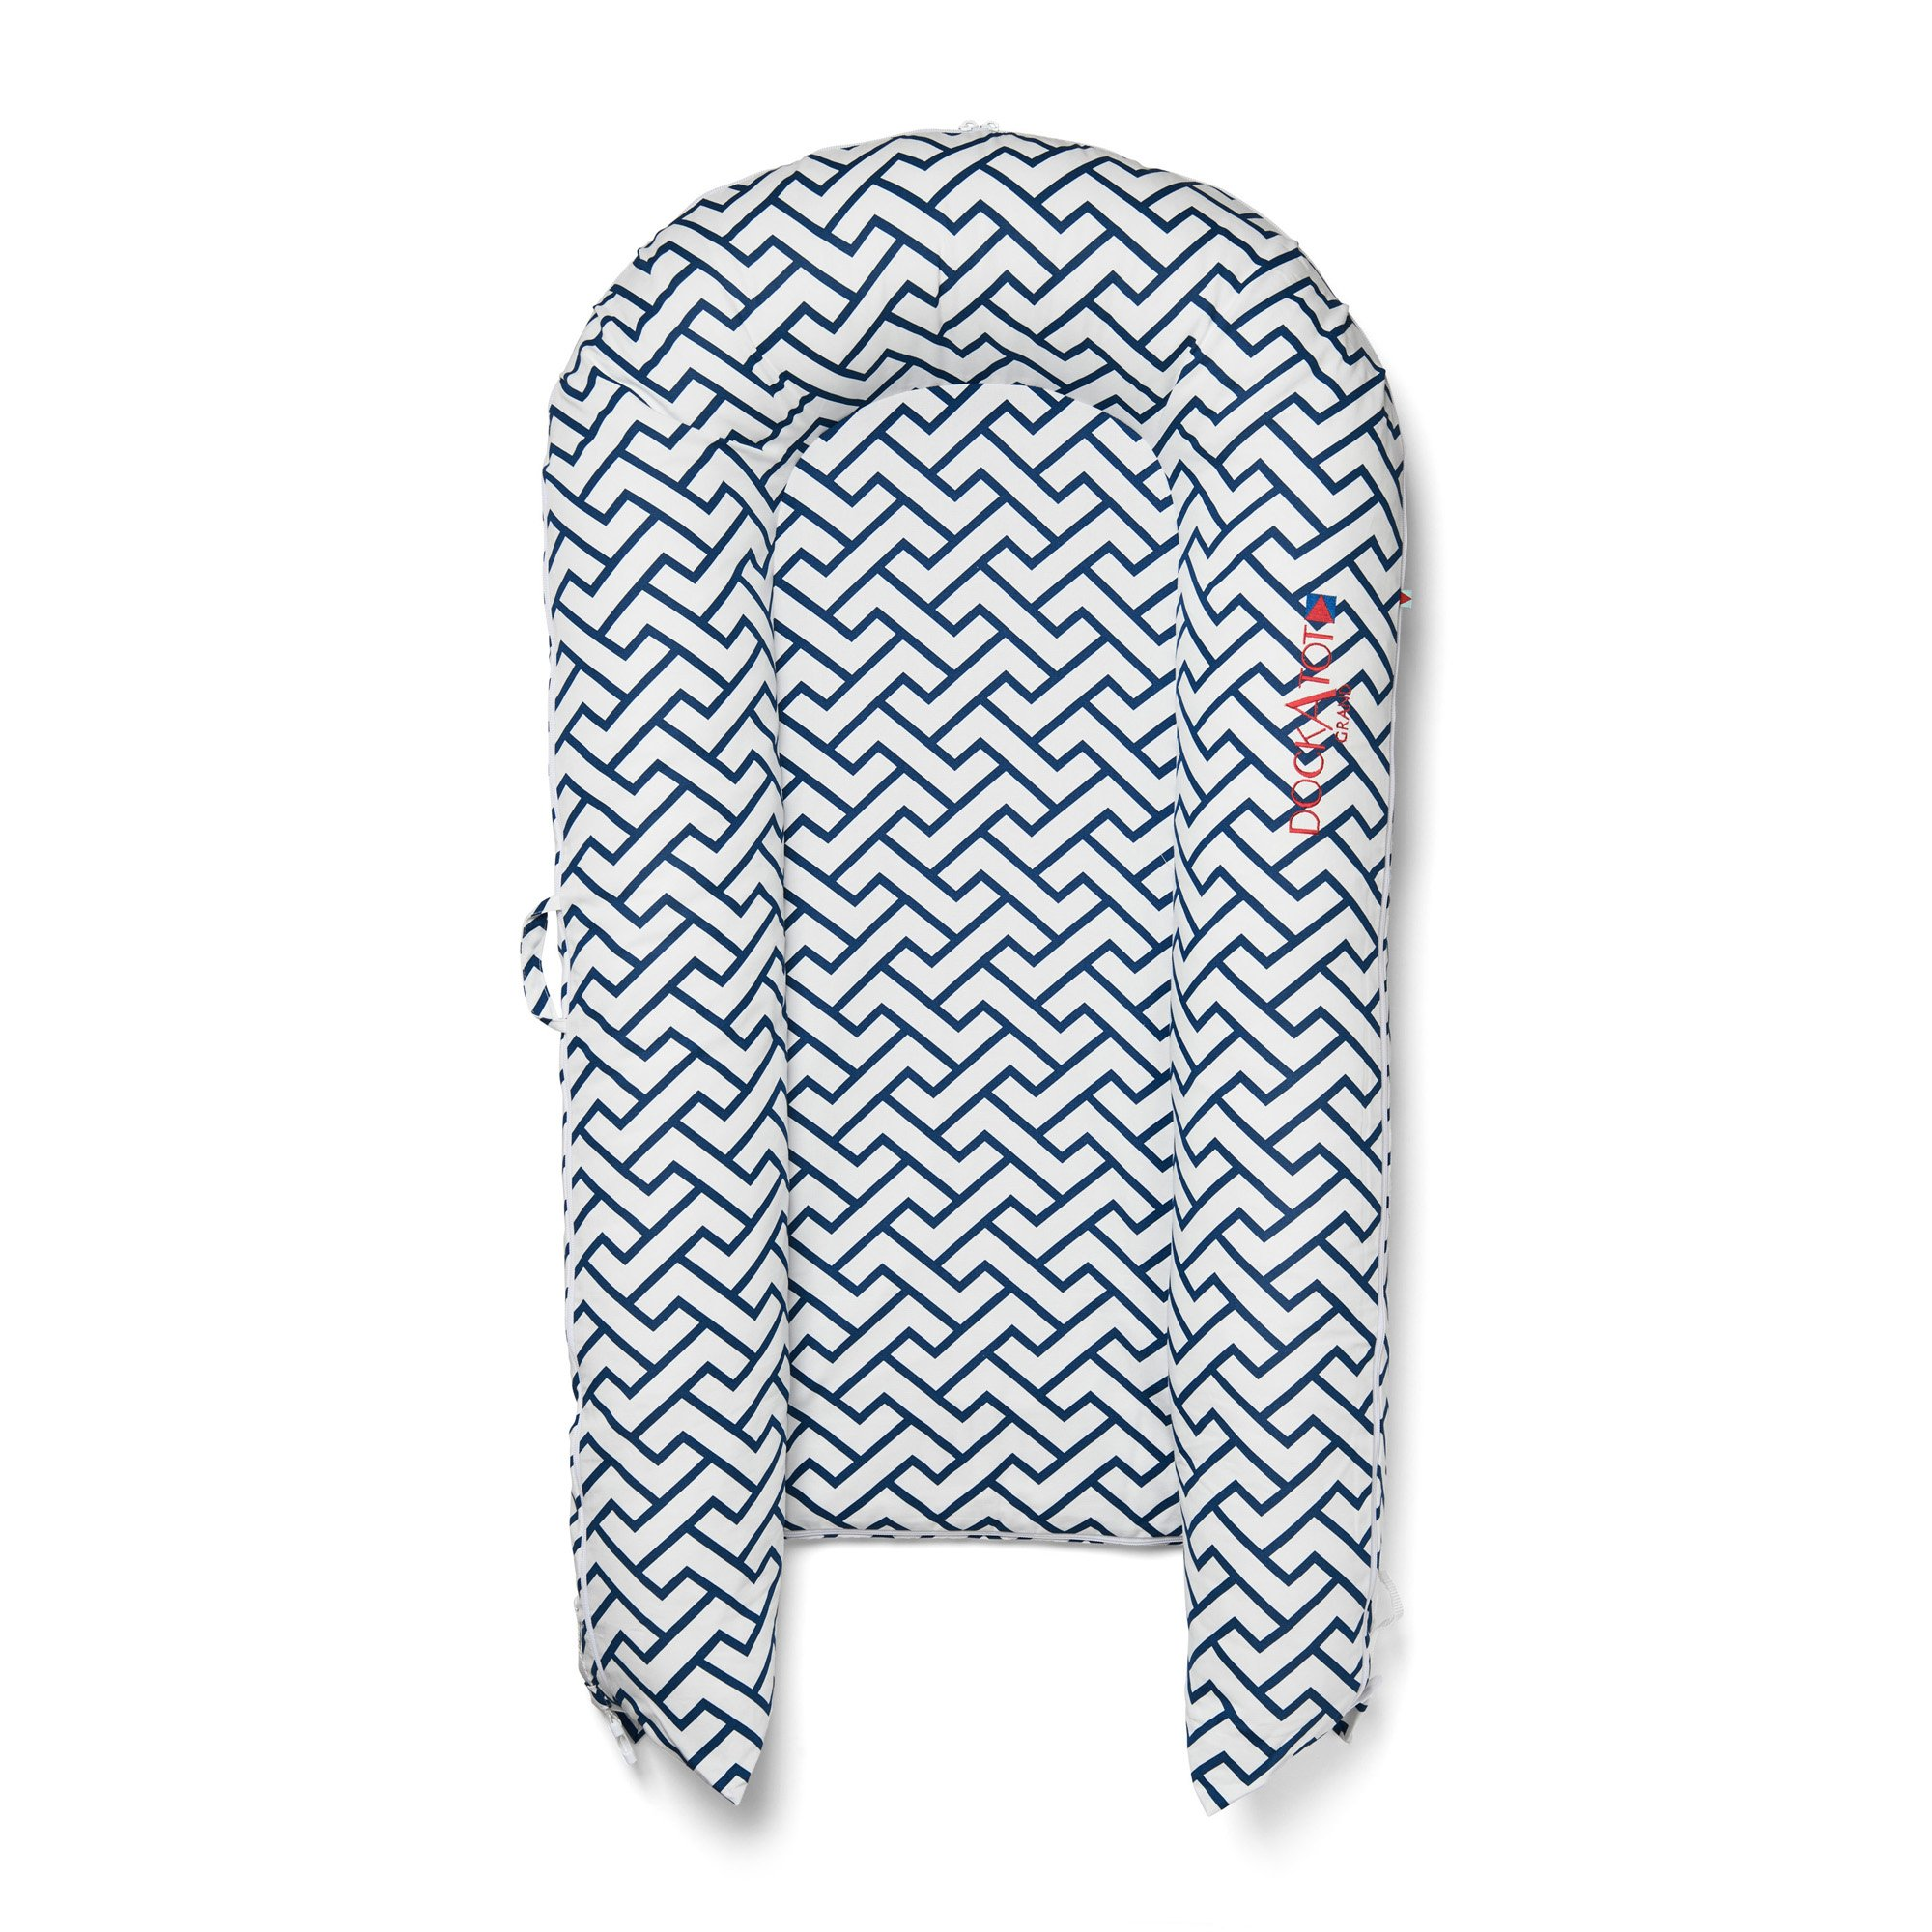 DockATot Grand Dock (Love Links) - Perfect for Cuddling, Lounging, Co Sleeping & Crib to Bed Transition - Breathable & Hypoallergenic - Lightweight for Easy Travel - Suitable from 9-36 months